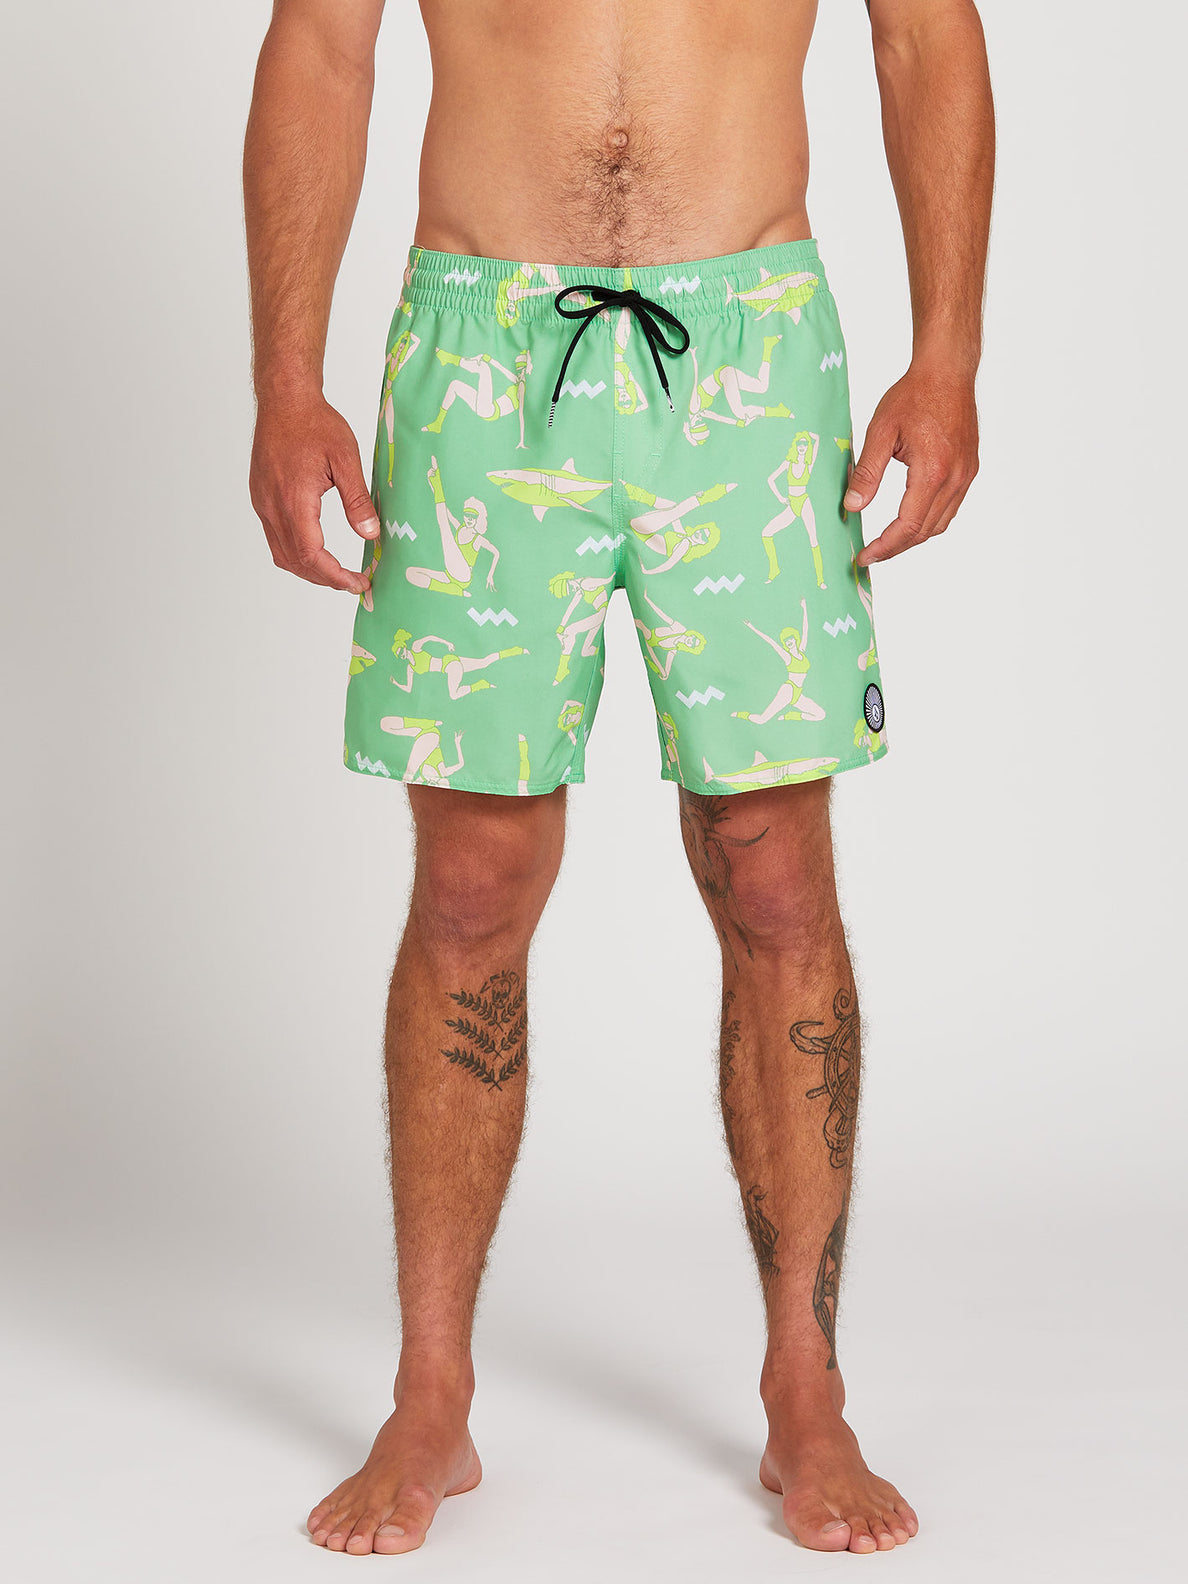 Sink Or Swim Trunks - Jade (A2522000_JDE) [1]